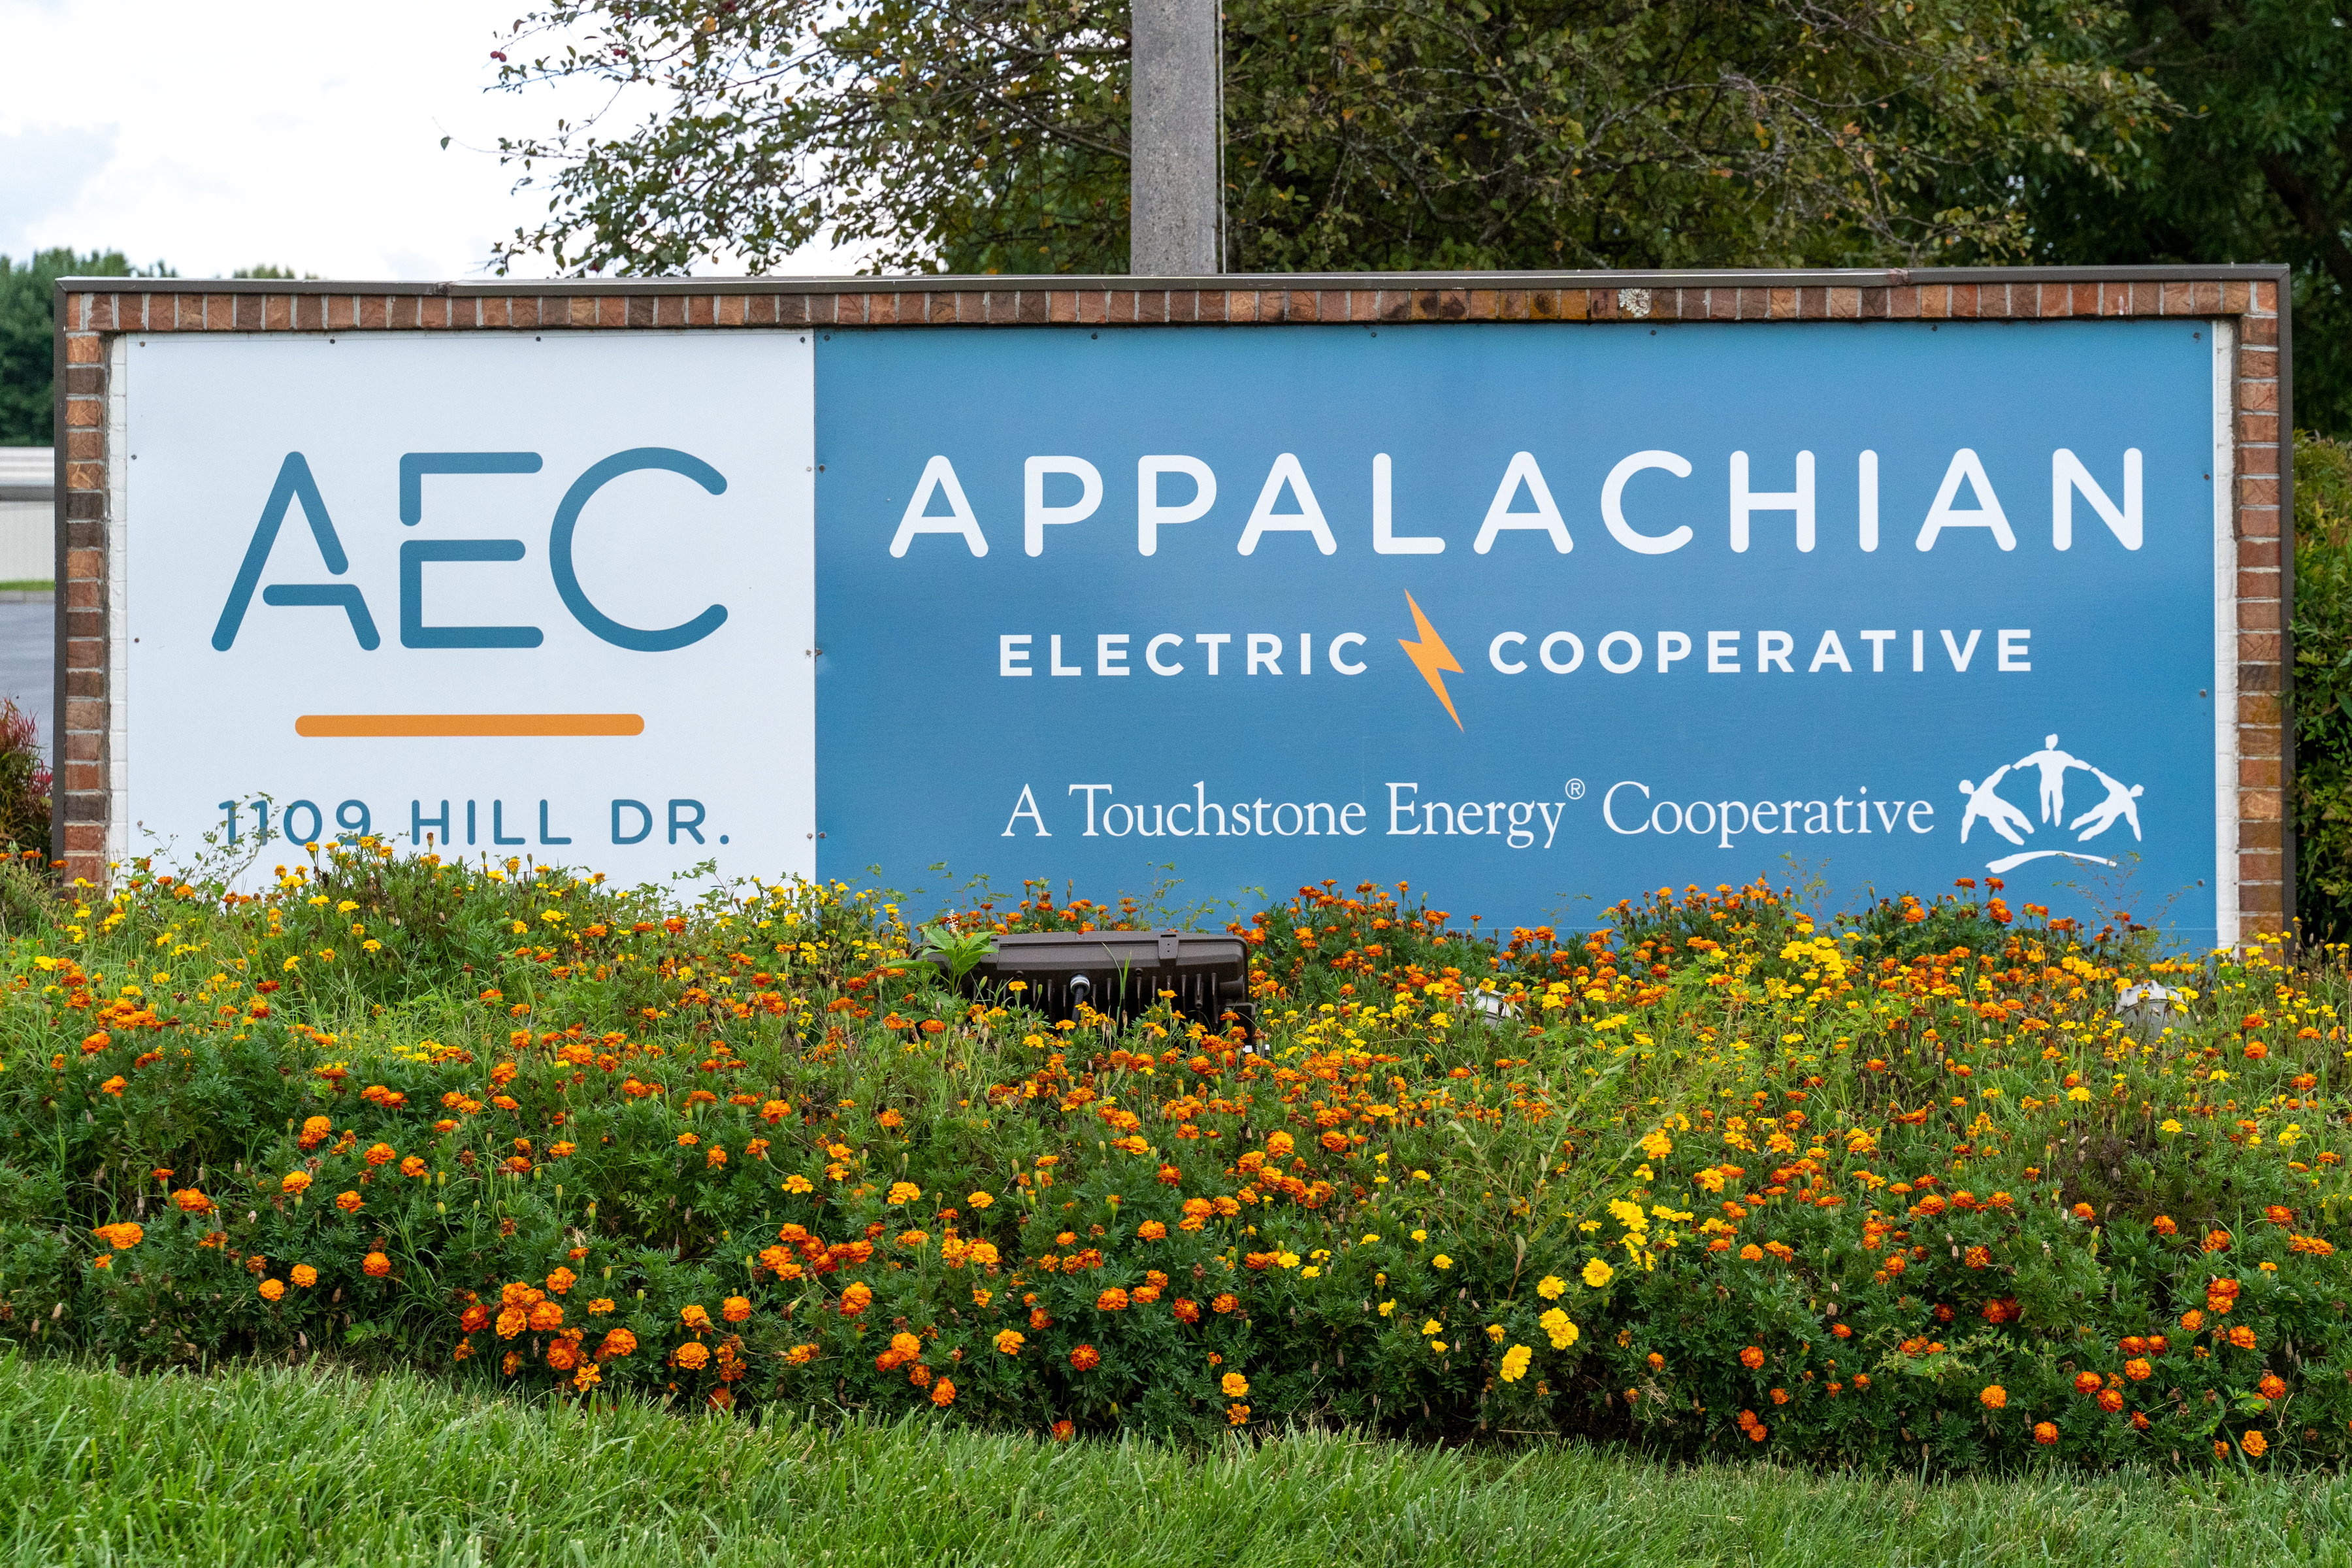 Appalachian Electric Sign